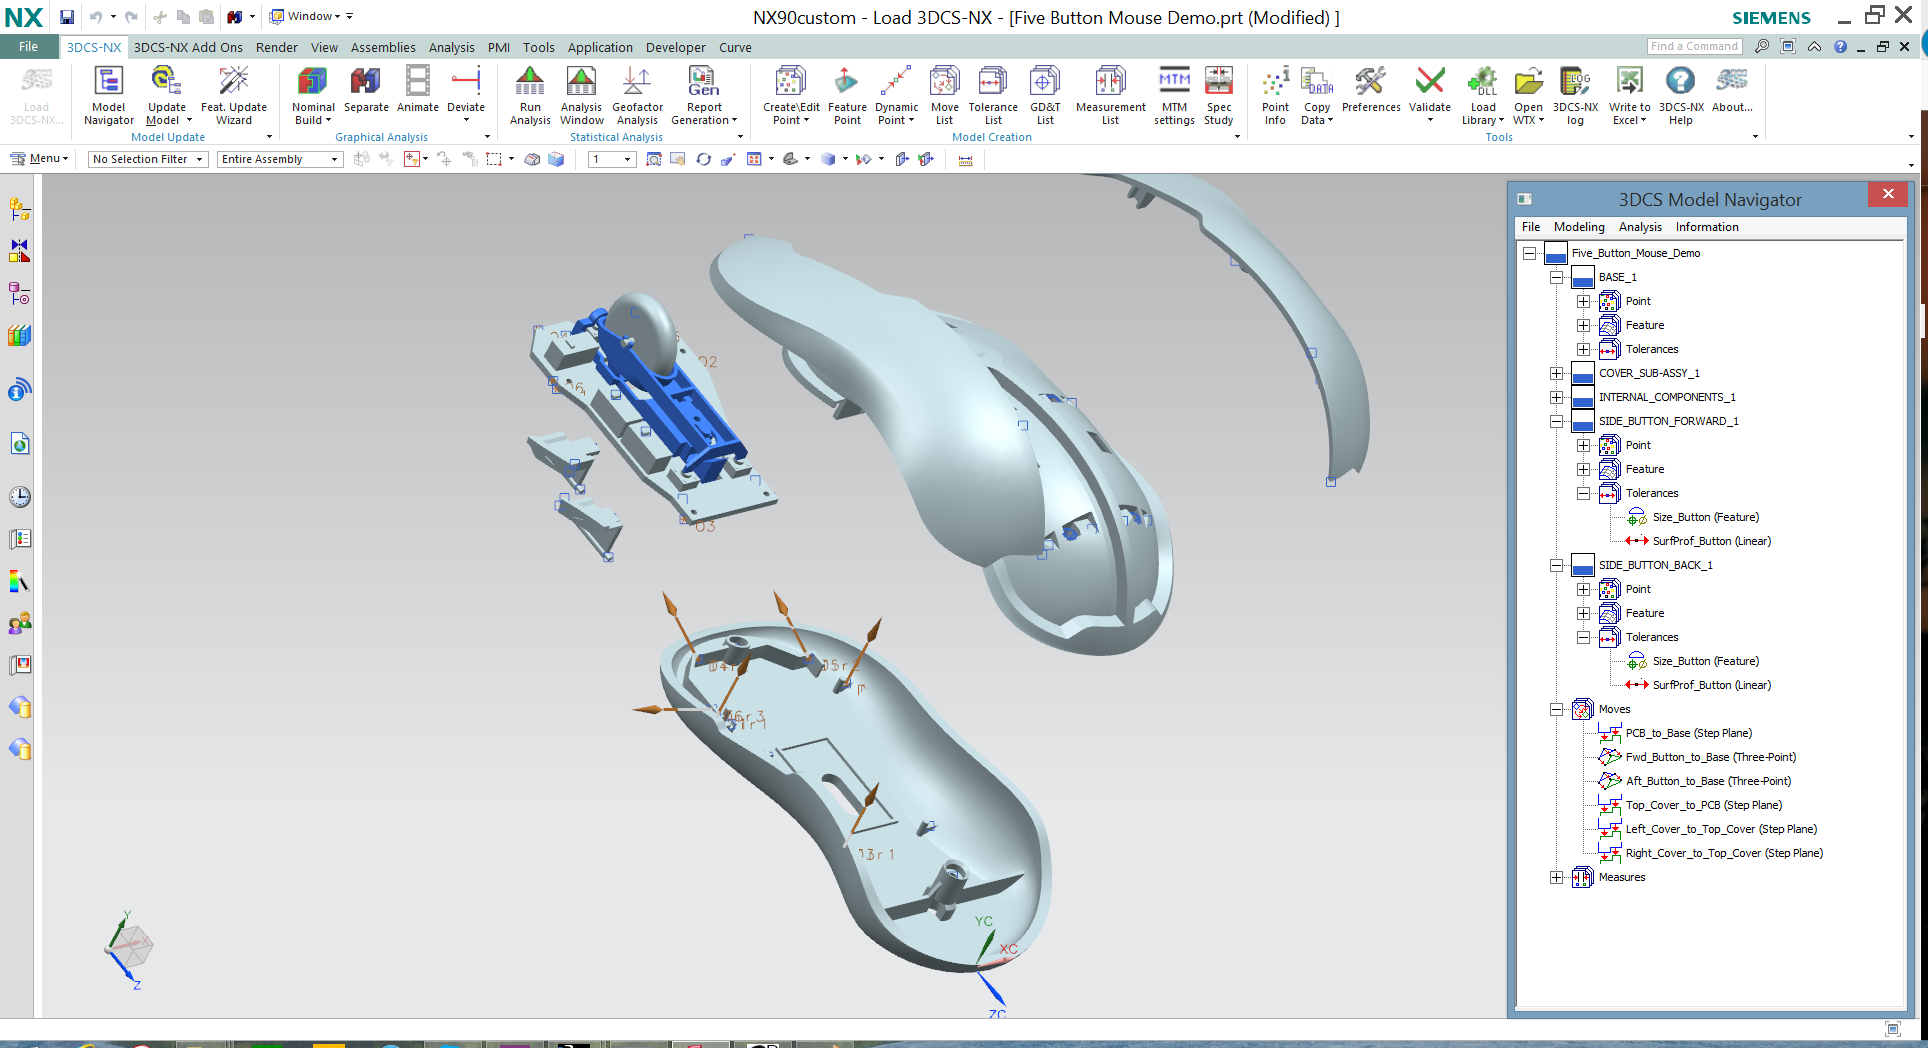 3DCS in NX - Mouse Model - Assembly Sequence Testing